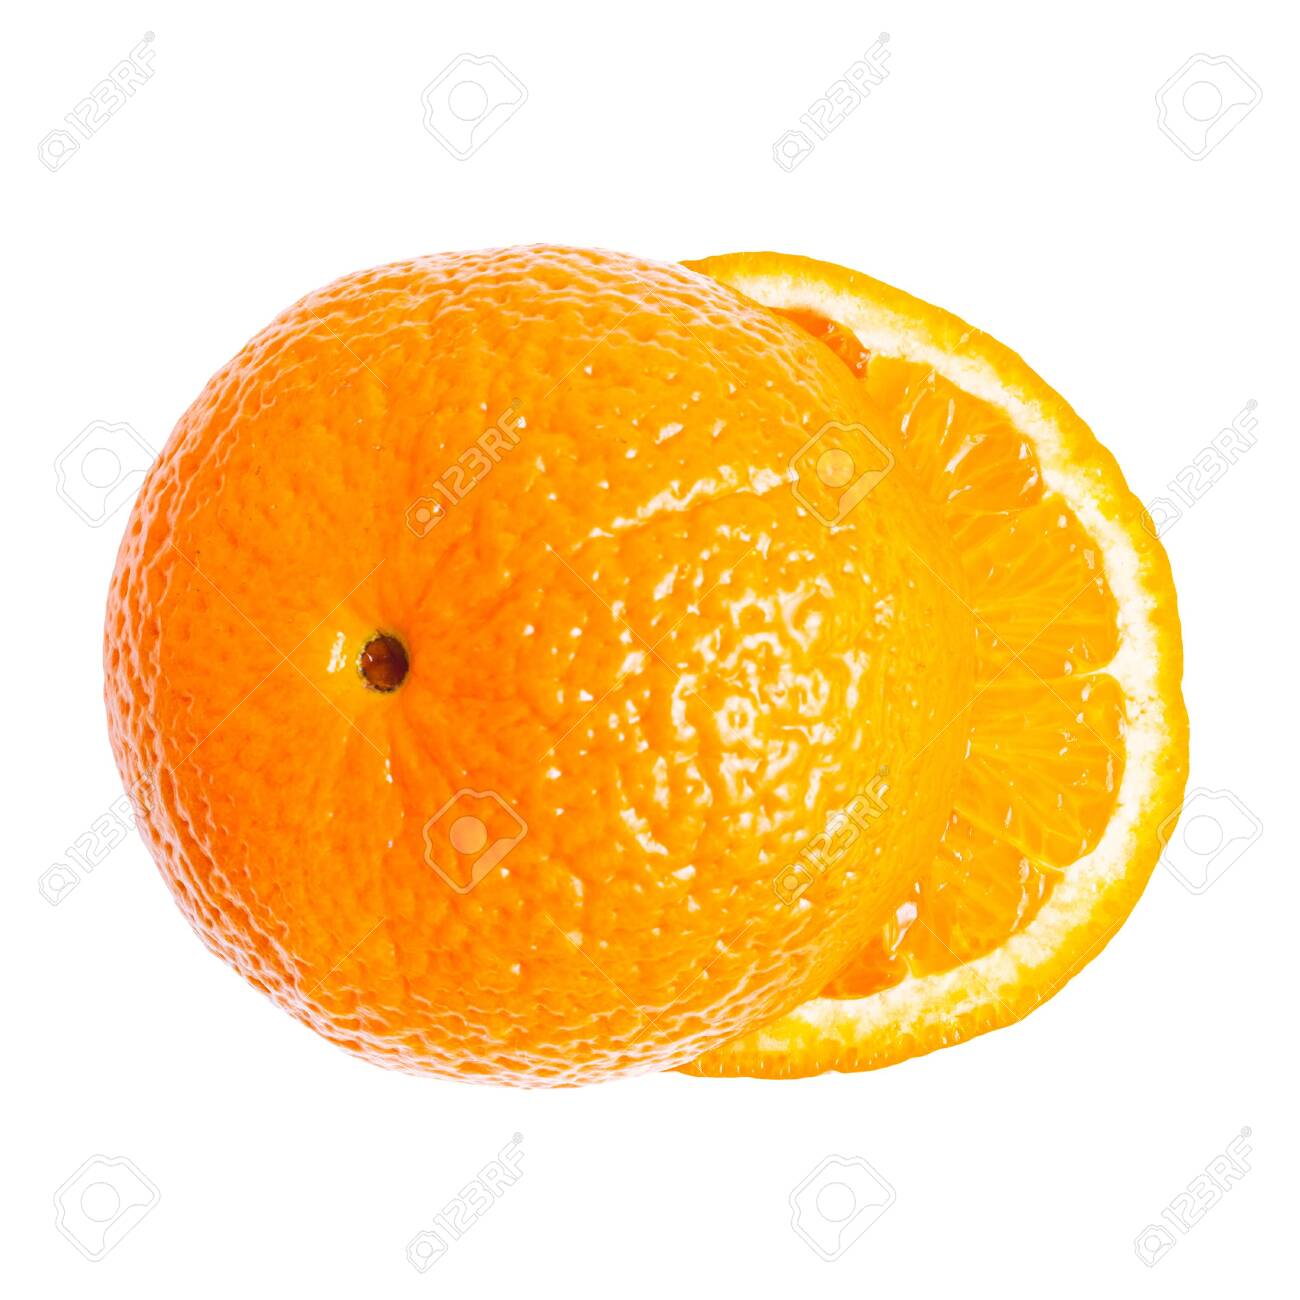 Cut orange fruit, sliced round halves of citrus isolated on white background, top view, flat lay. - 137346412